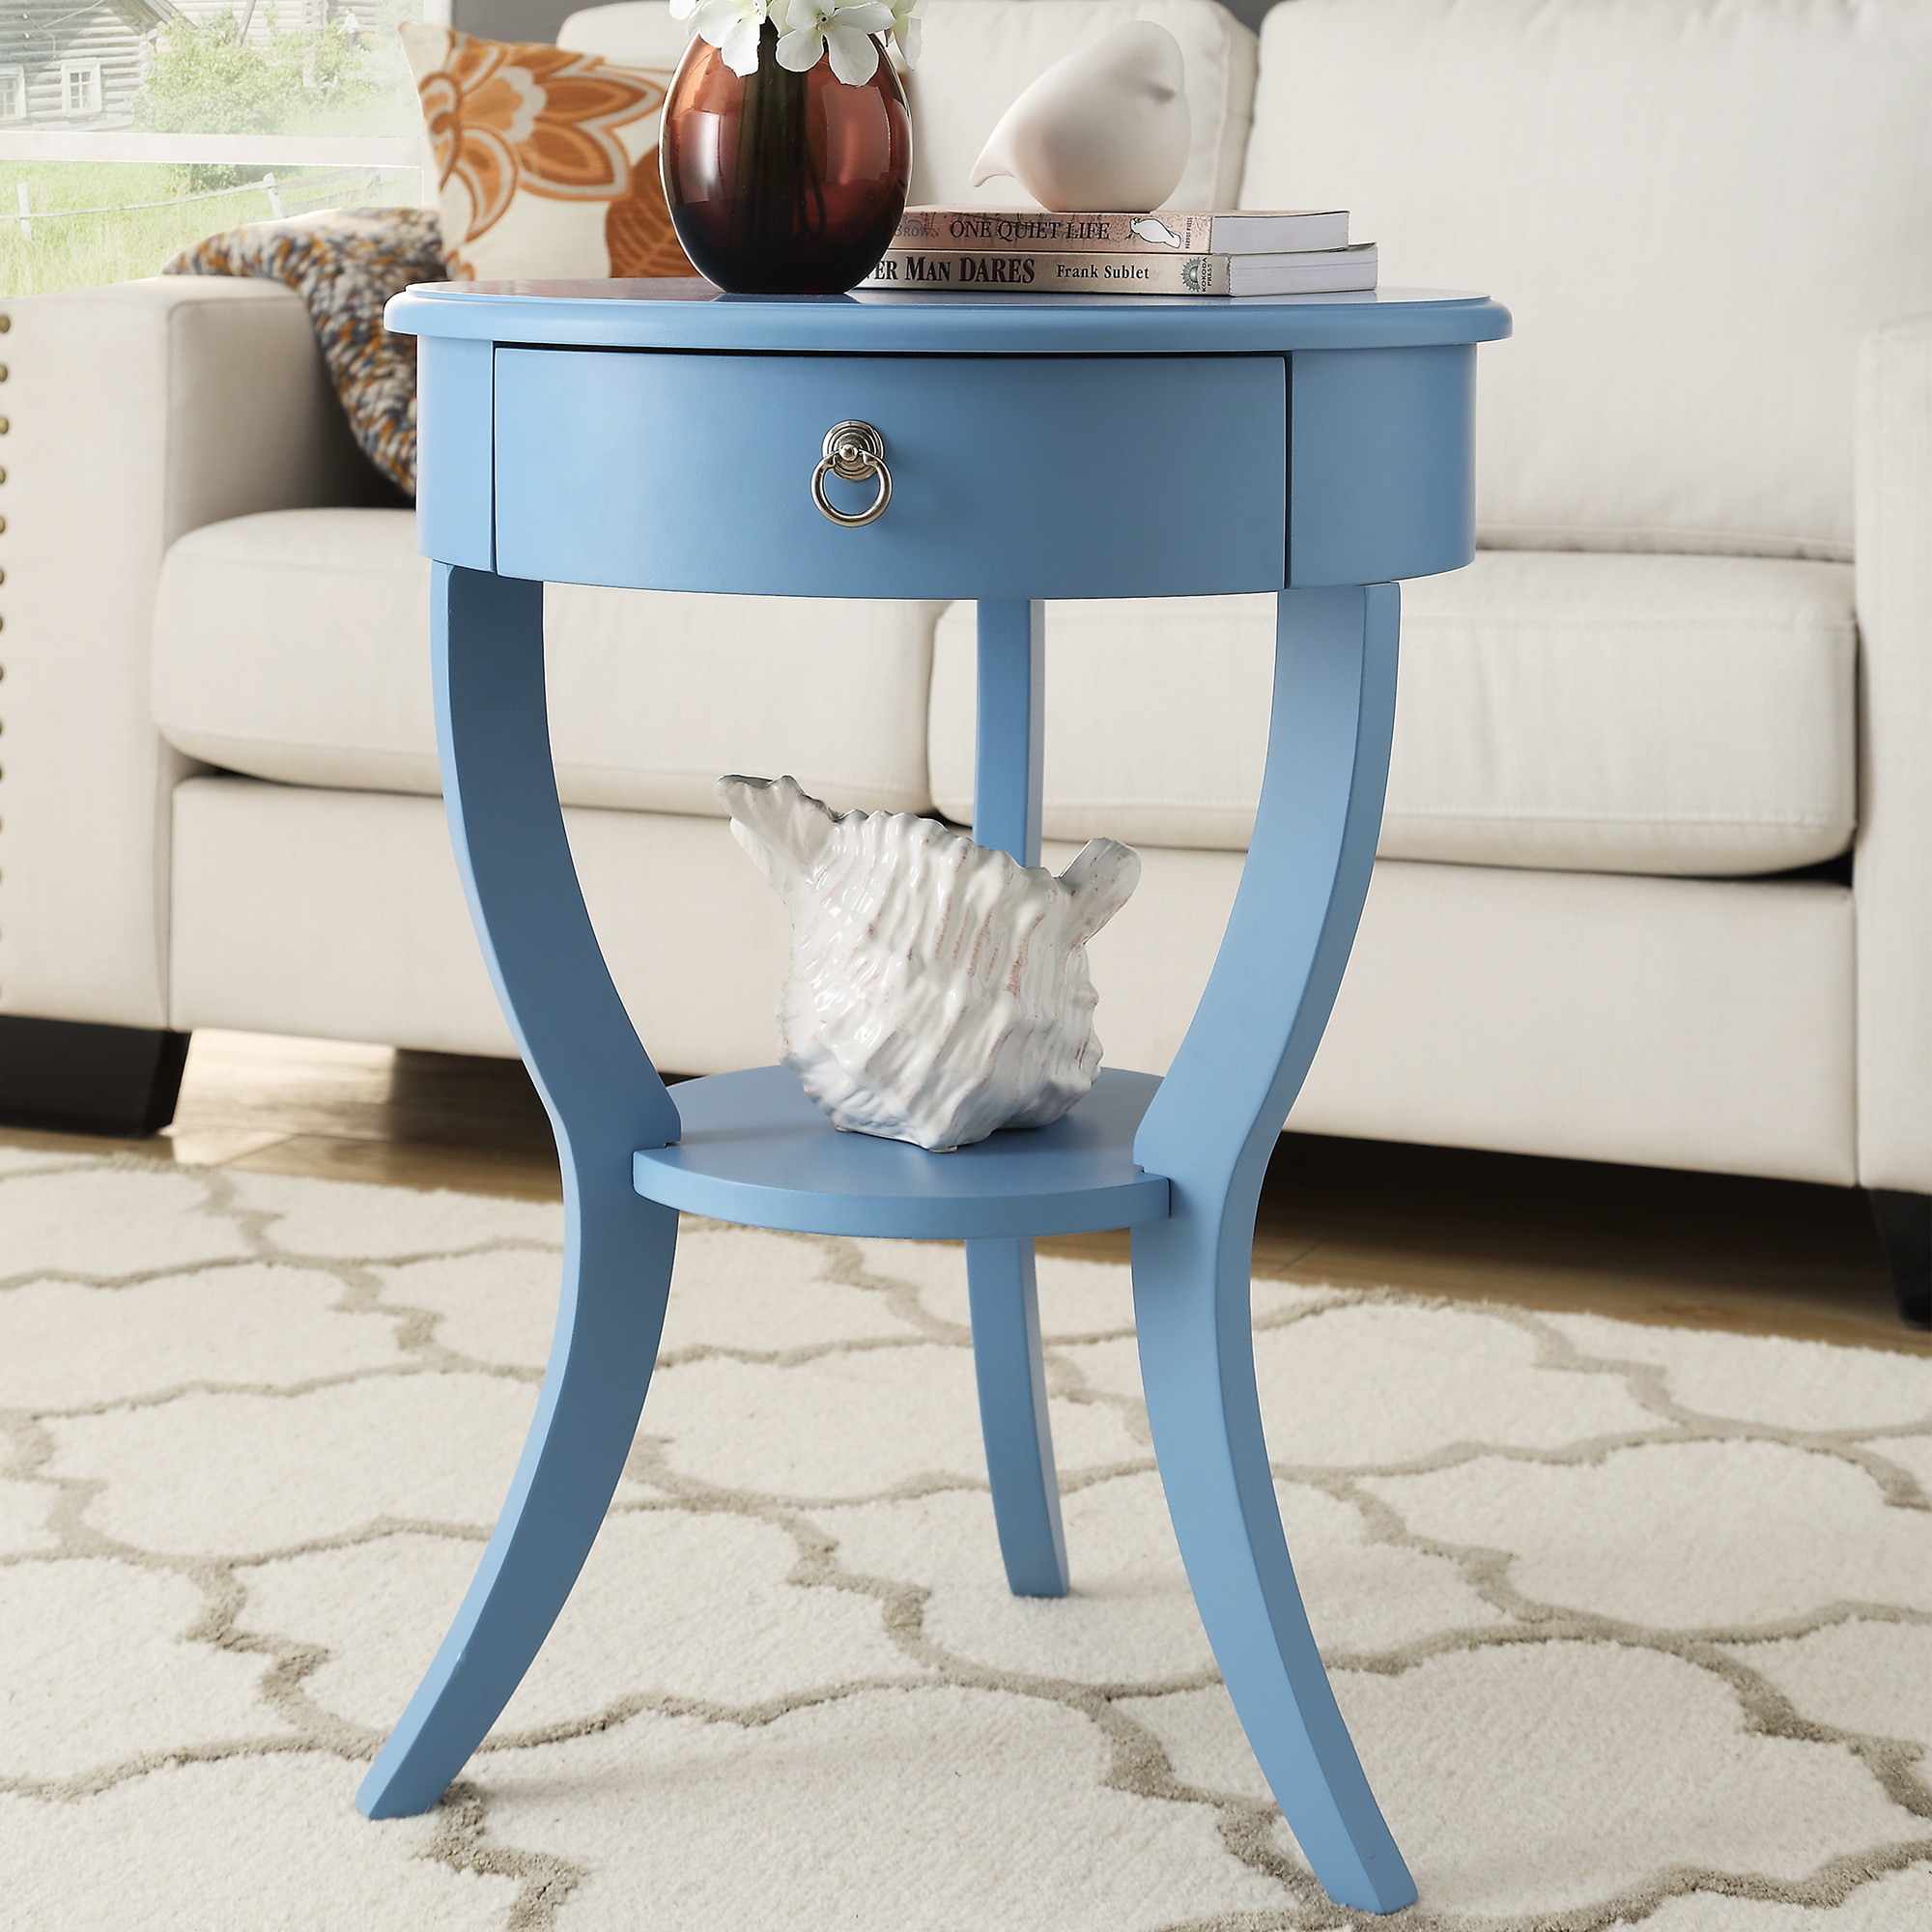 end table design blue with power stone tables multiple drawers marble distressed dark round laura ashley dining dog house plans for large dogs cherry side drawer entrance hall